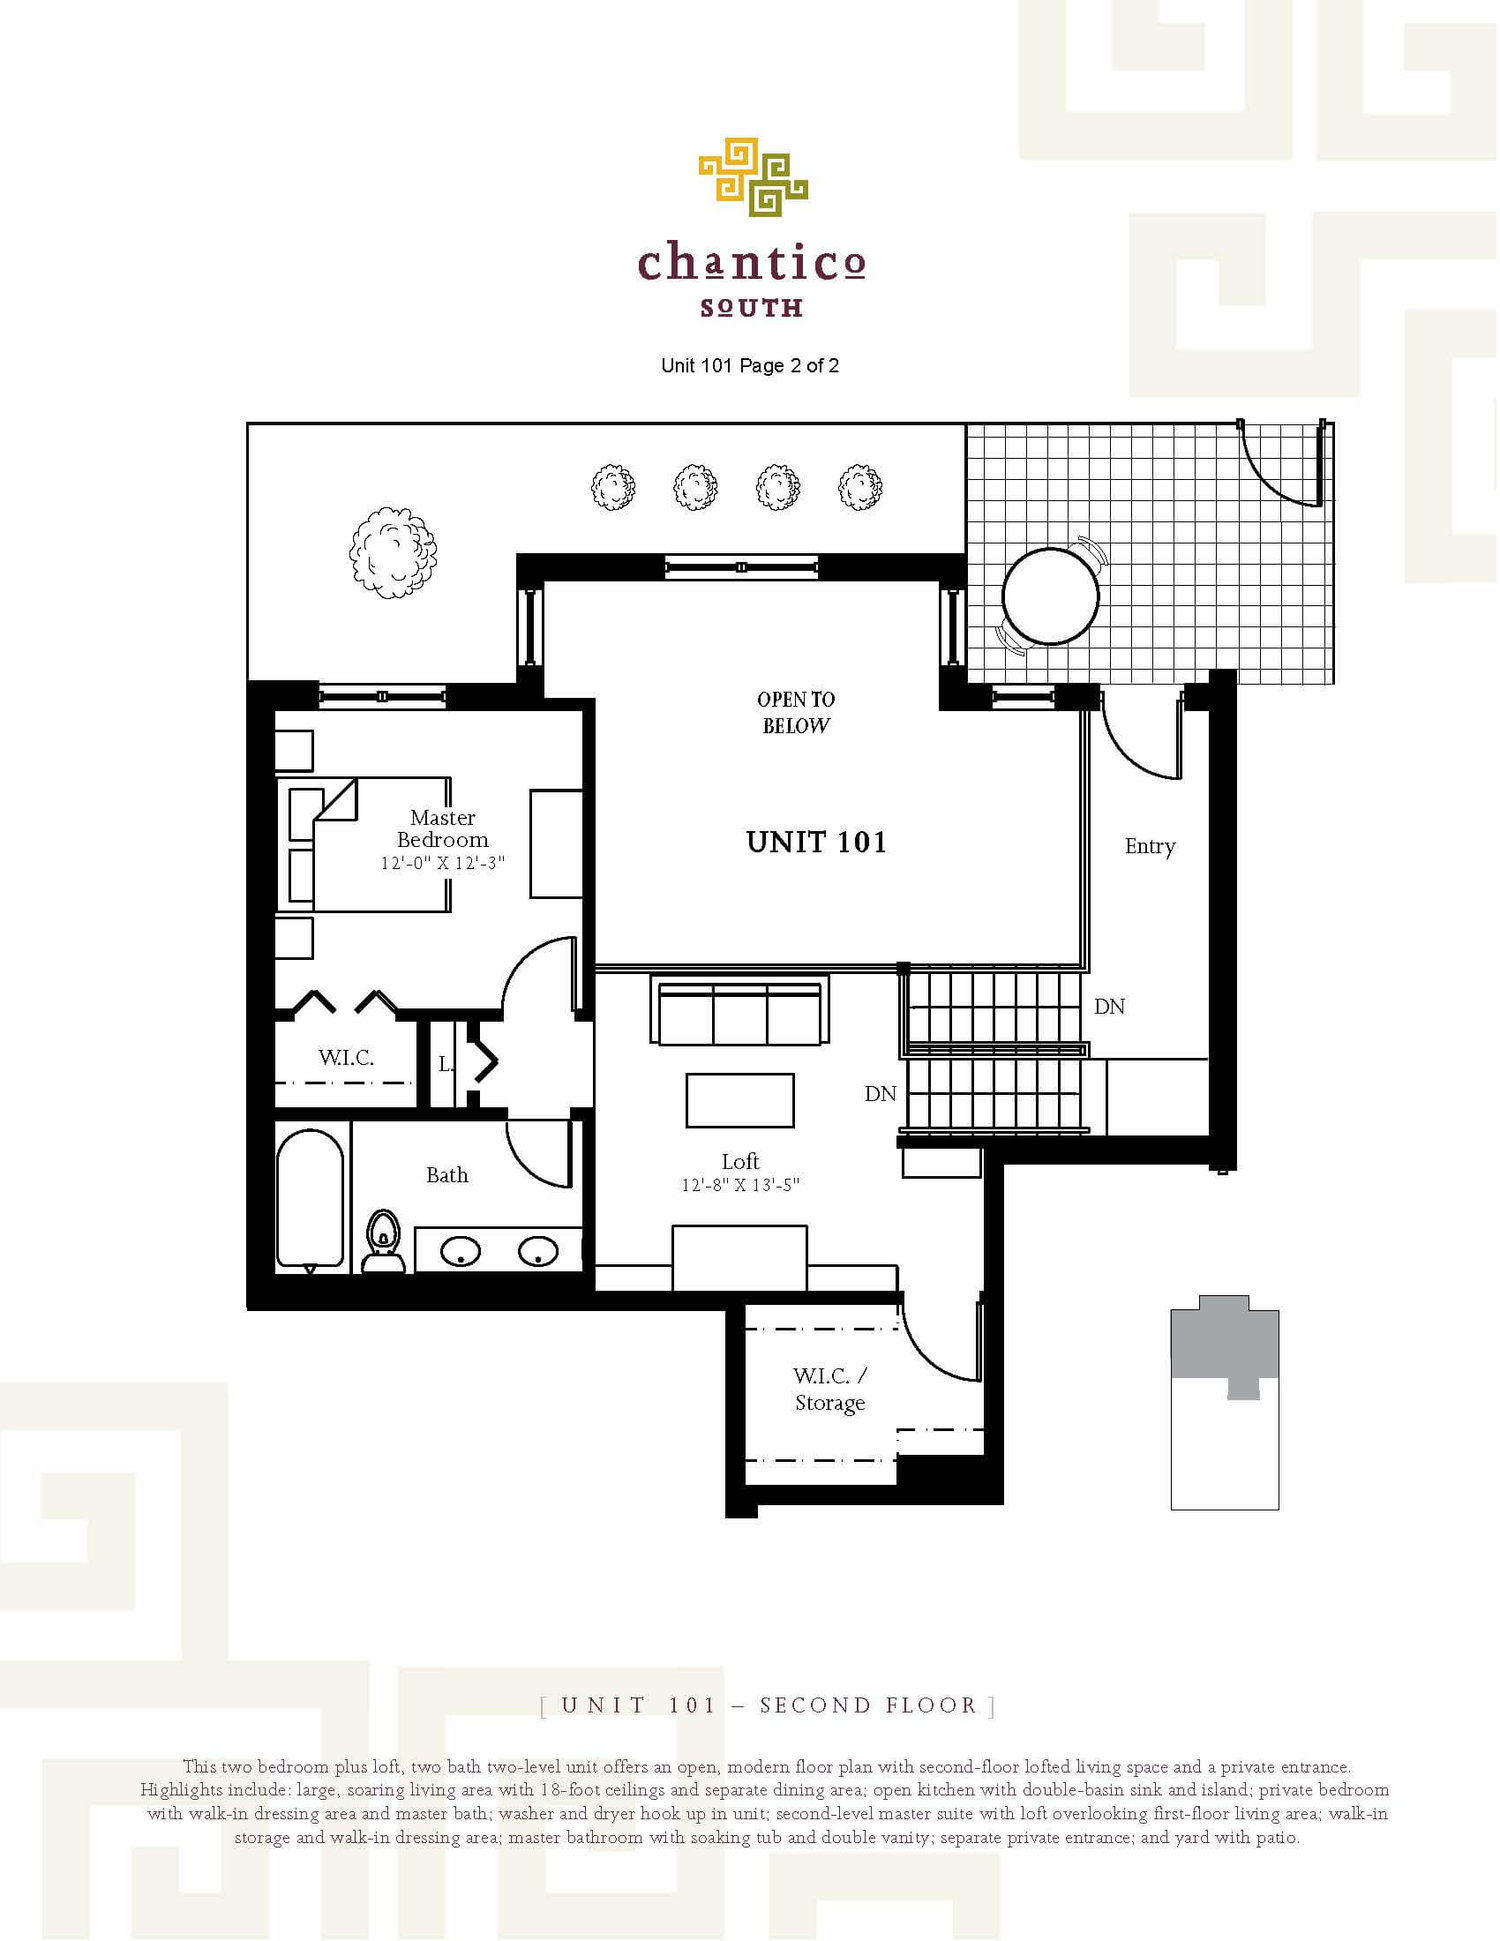 Chicago-apartment-101-Chantico-South-Floorplans-Page-2.jpg